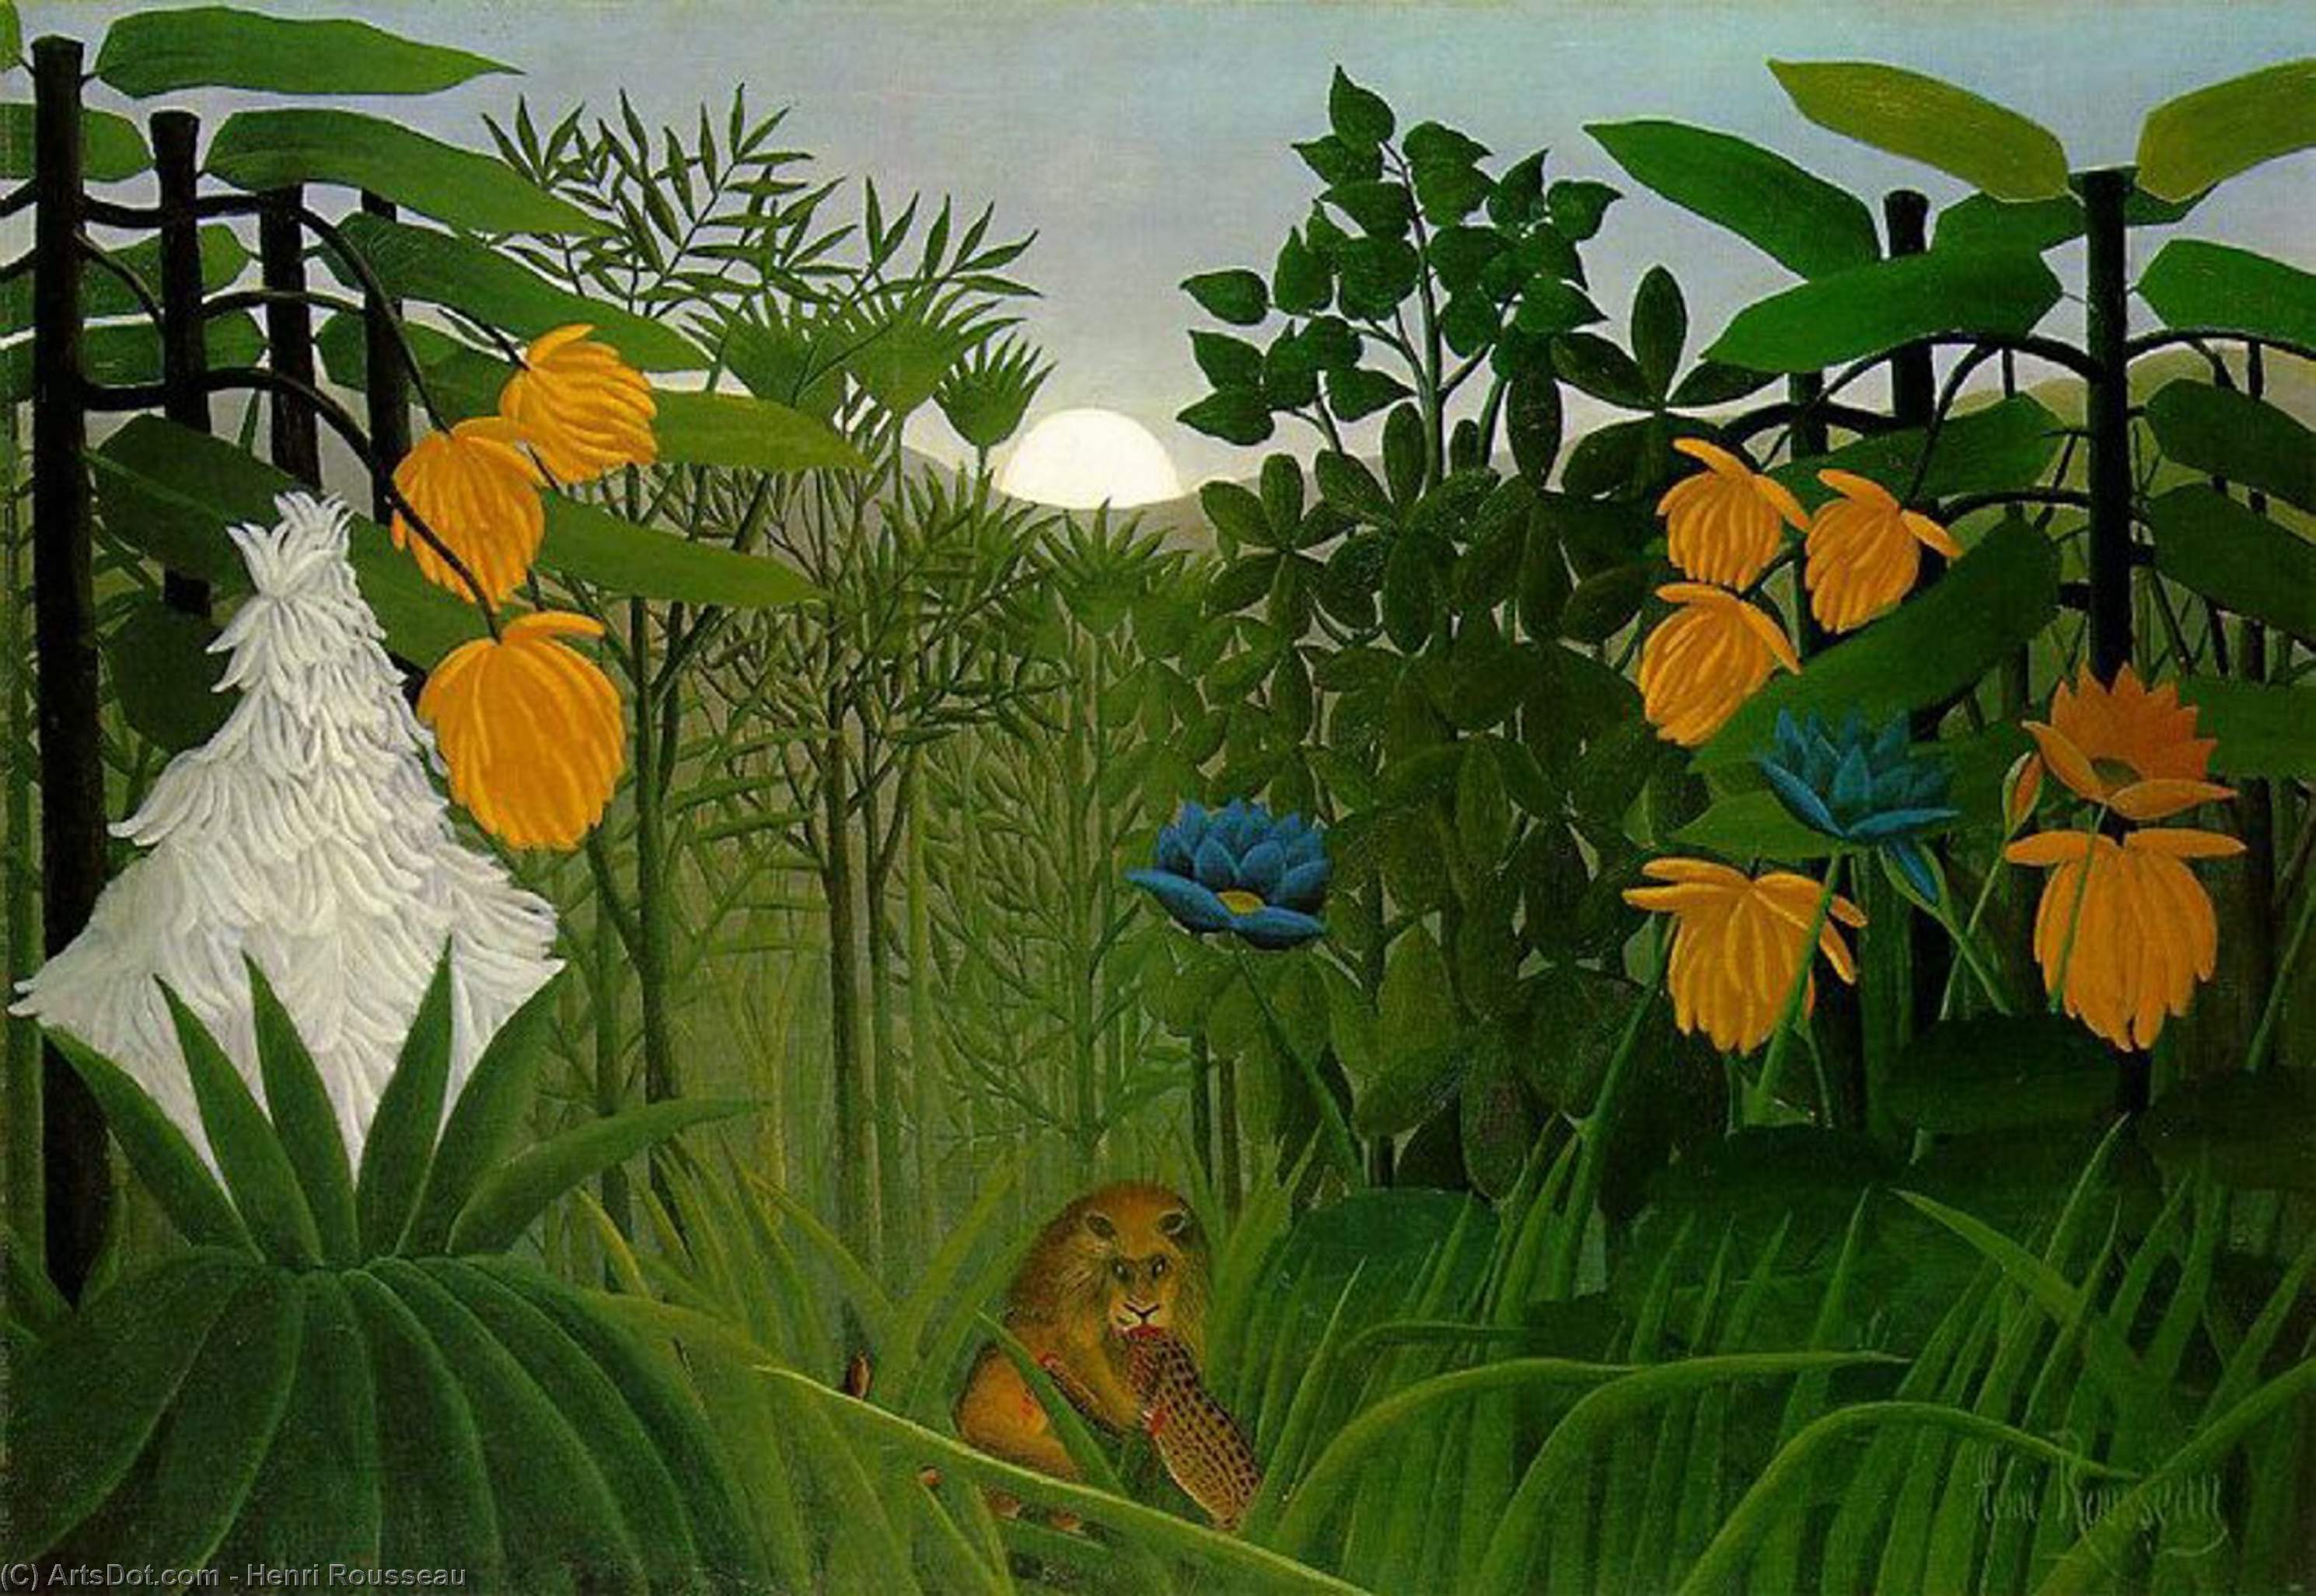 Wikioo.org - The Encyclopedia of Fine Arts - Painting, Artwork by Henri Julien Félix Rousseau (Le Douanier) - The repast of the lion, The